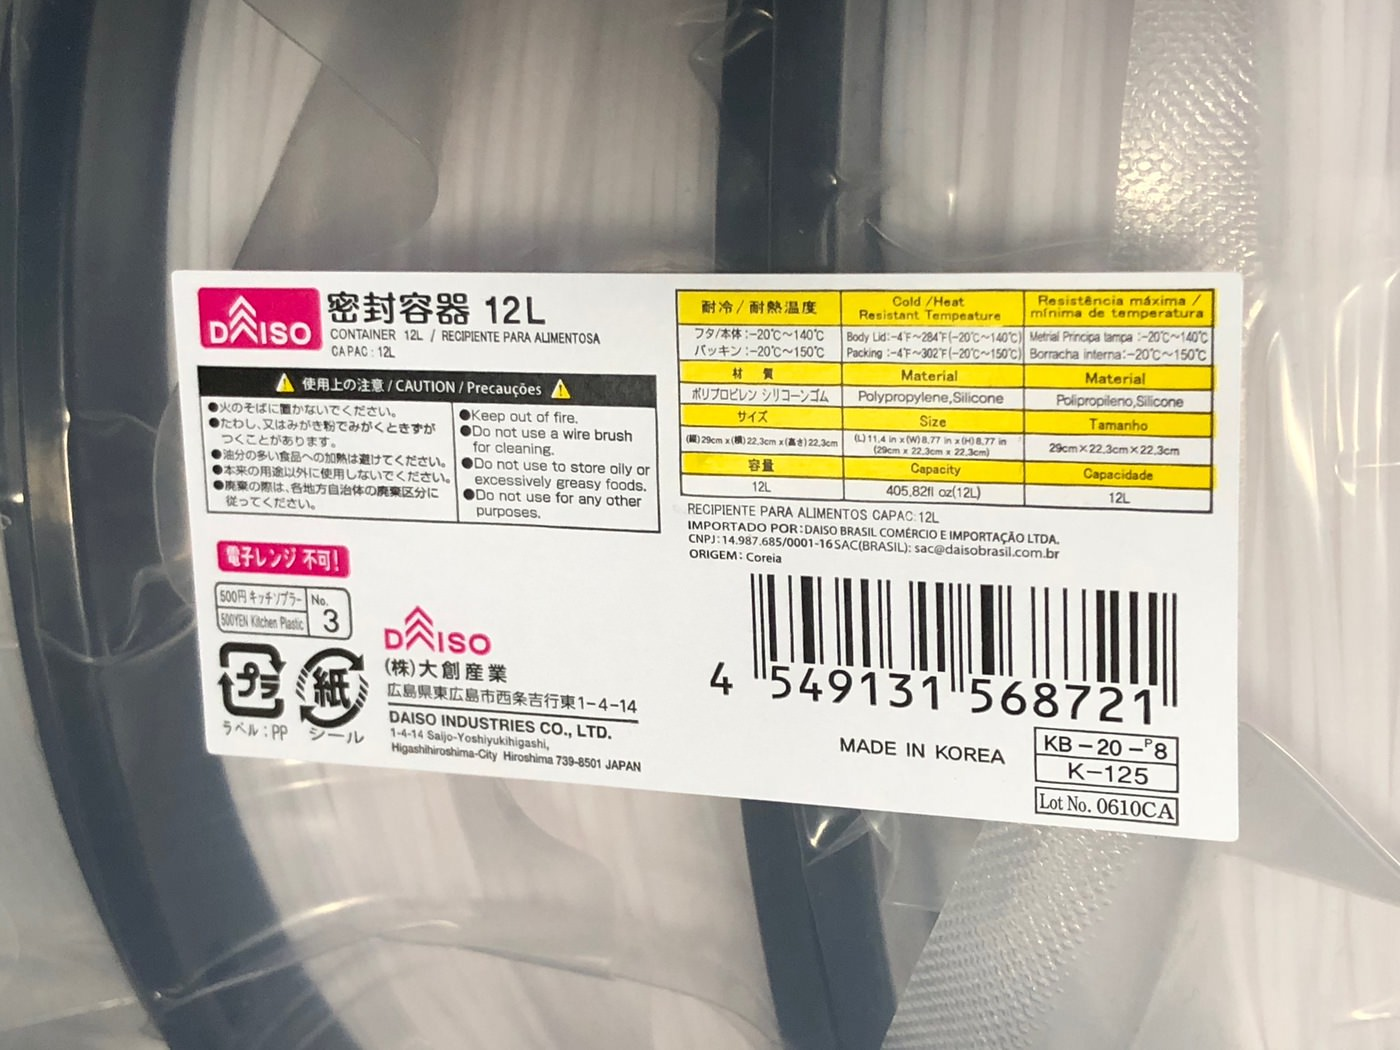 A dry box with a filament delivery function made using an airtight container from daiso 00027